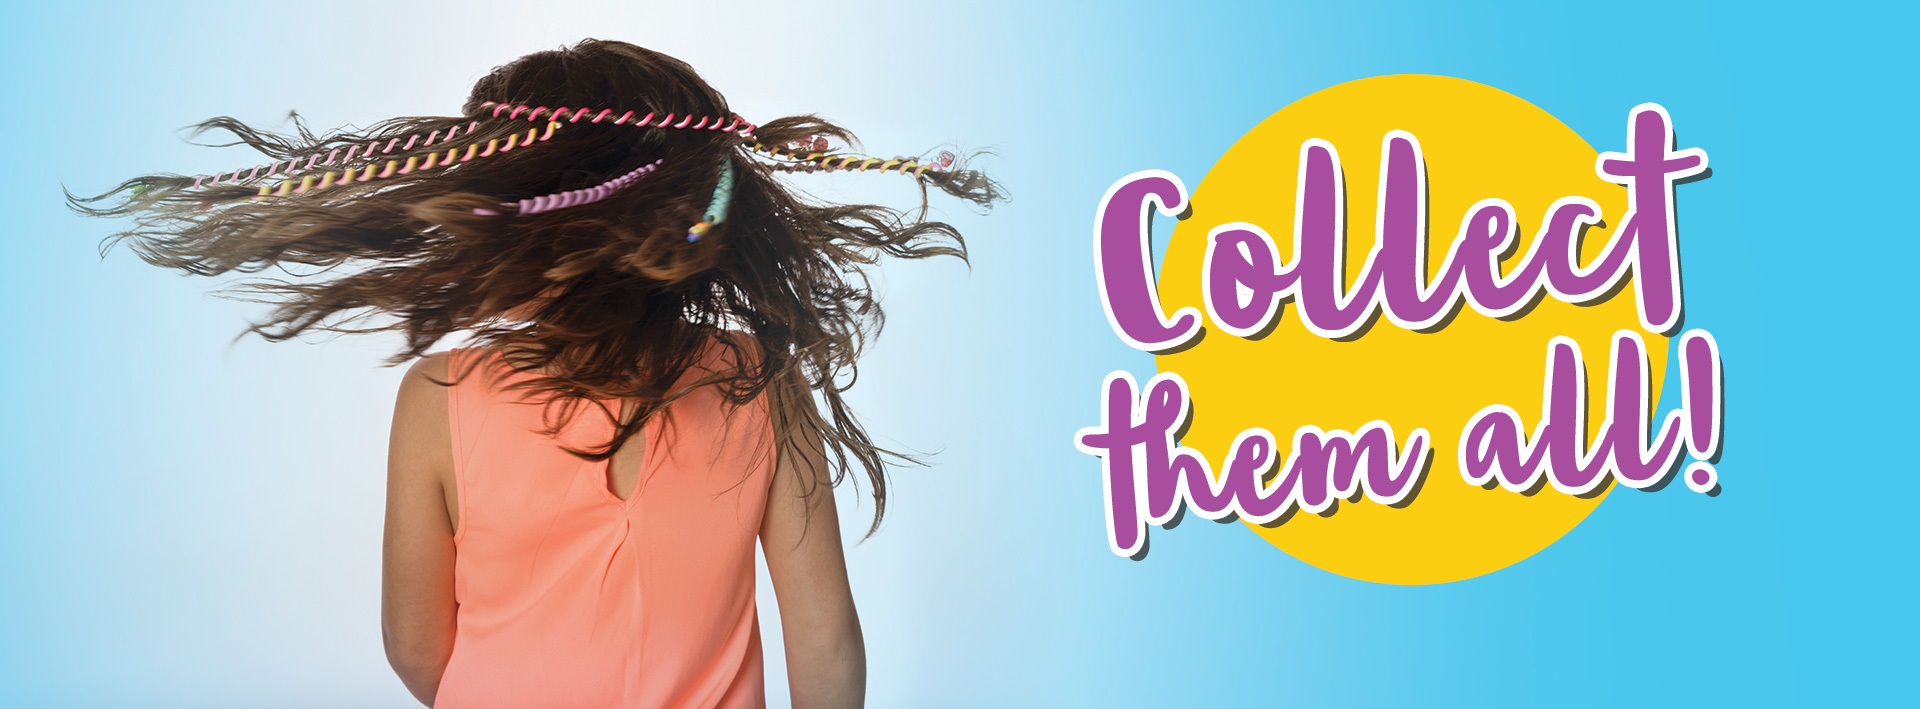 Collect-banner01